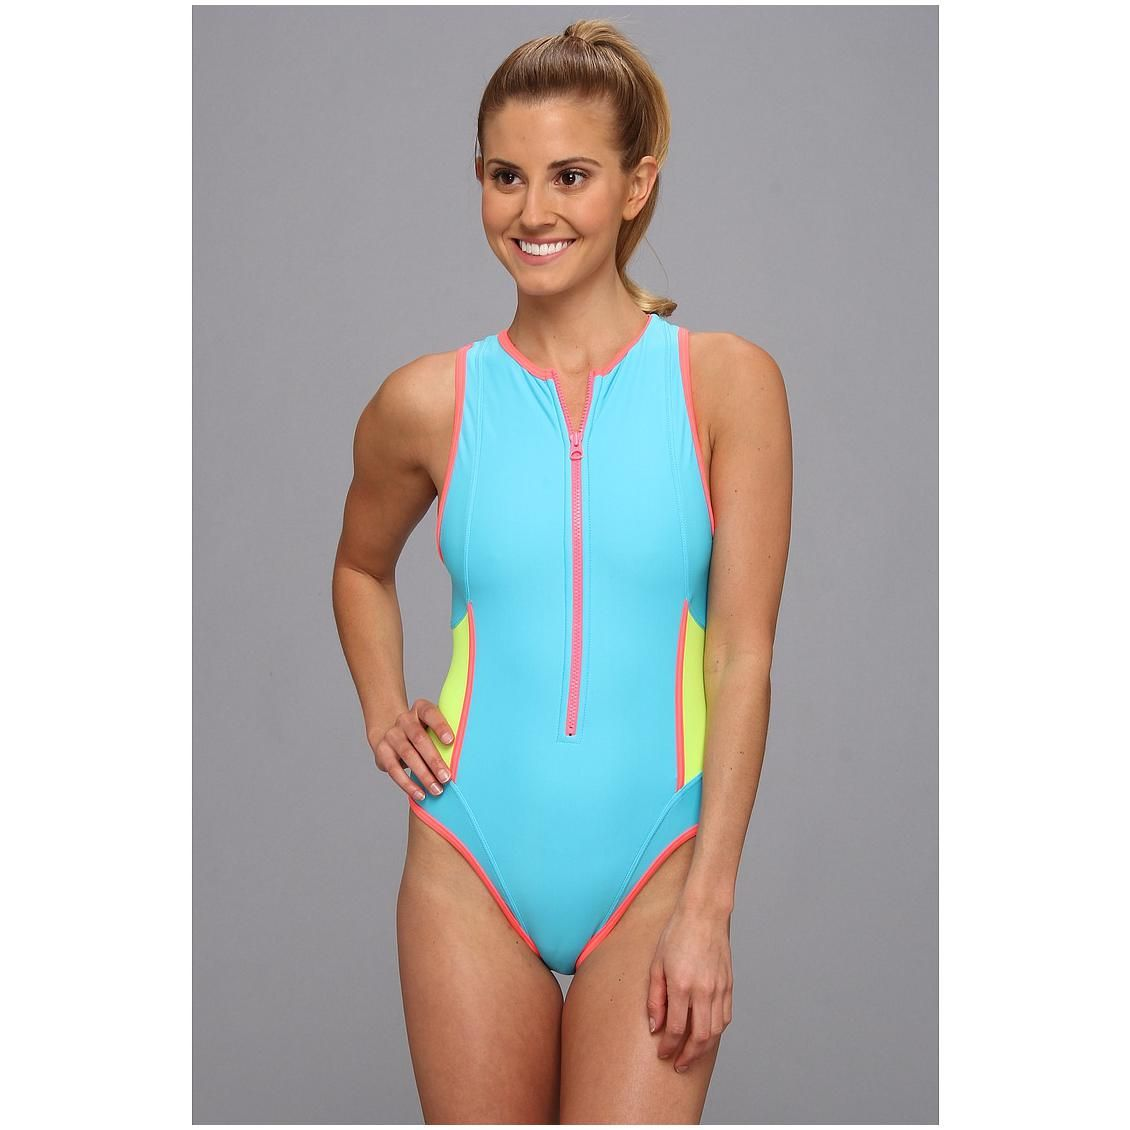 Amazing Womens One Piece Bathing Suits Part - 12: TYR Womenu0027s Huntington Beach Solid Zipper One-Piece Swimsuit